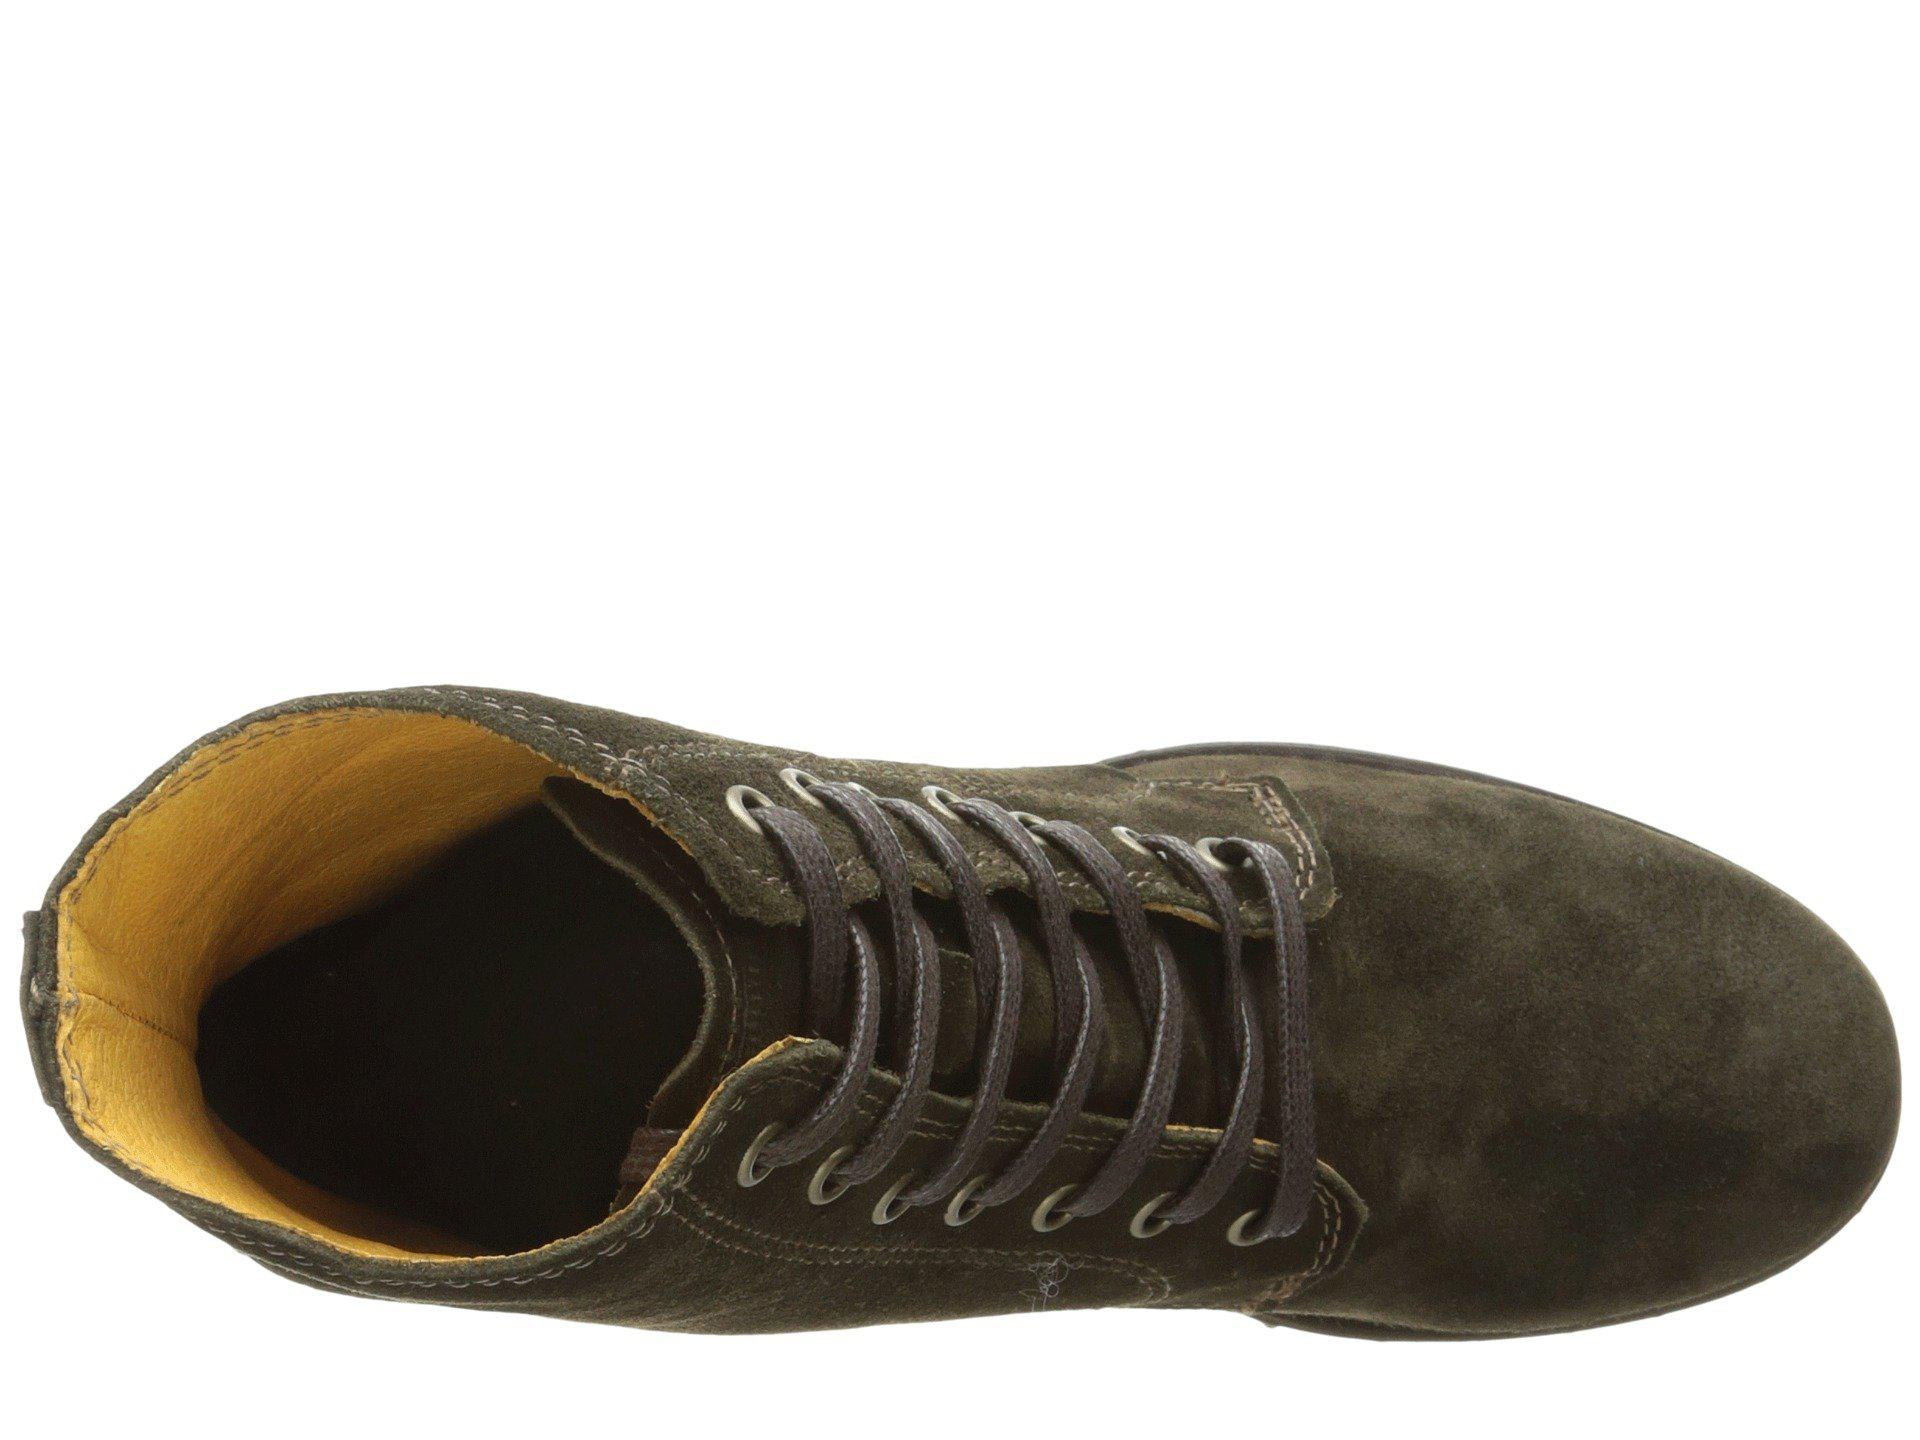 2373278707a9 Frye - Multicolor Sabrina 6g Lace Up - Lyst. View fullscreen